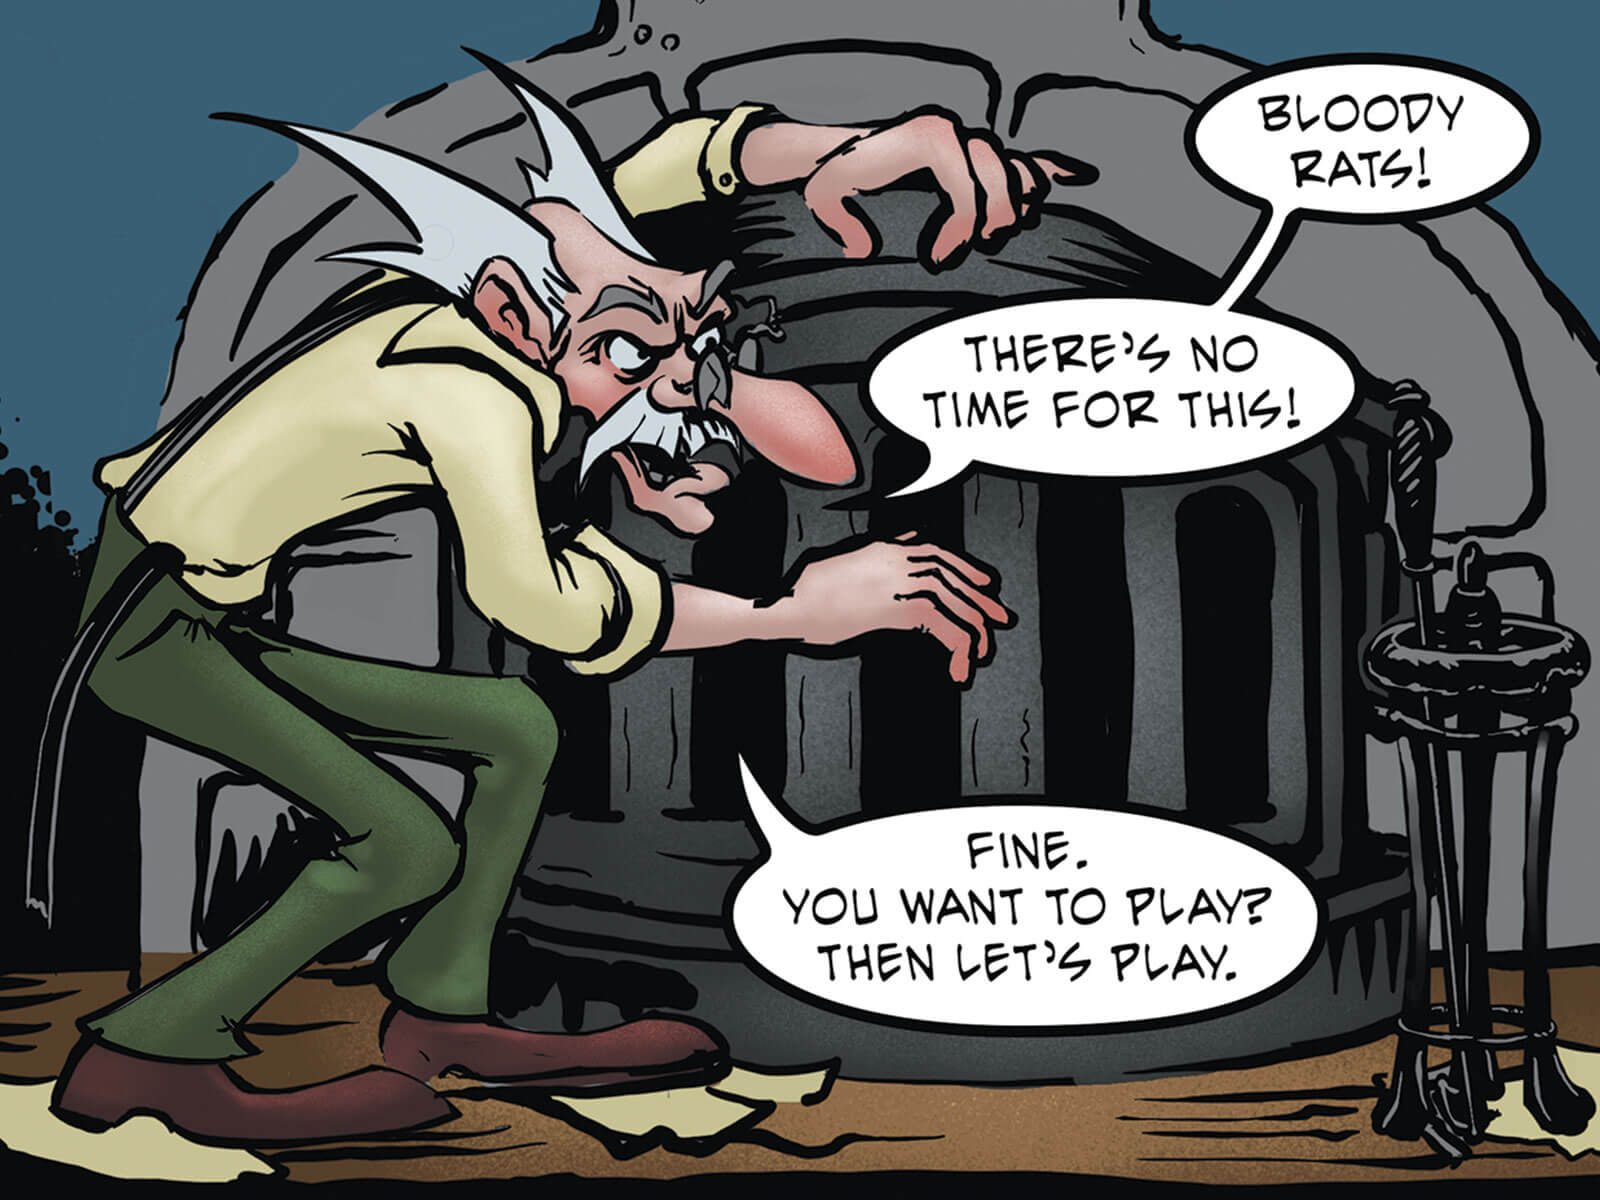 Comic book panels of an old man chasing a rat